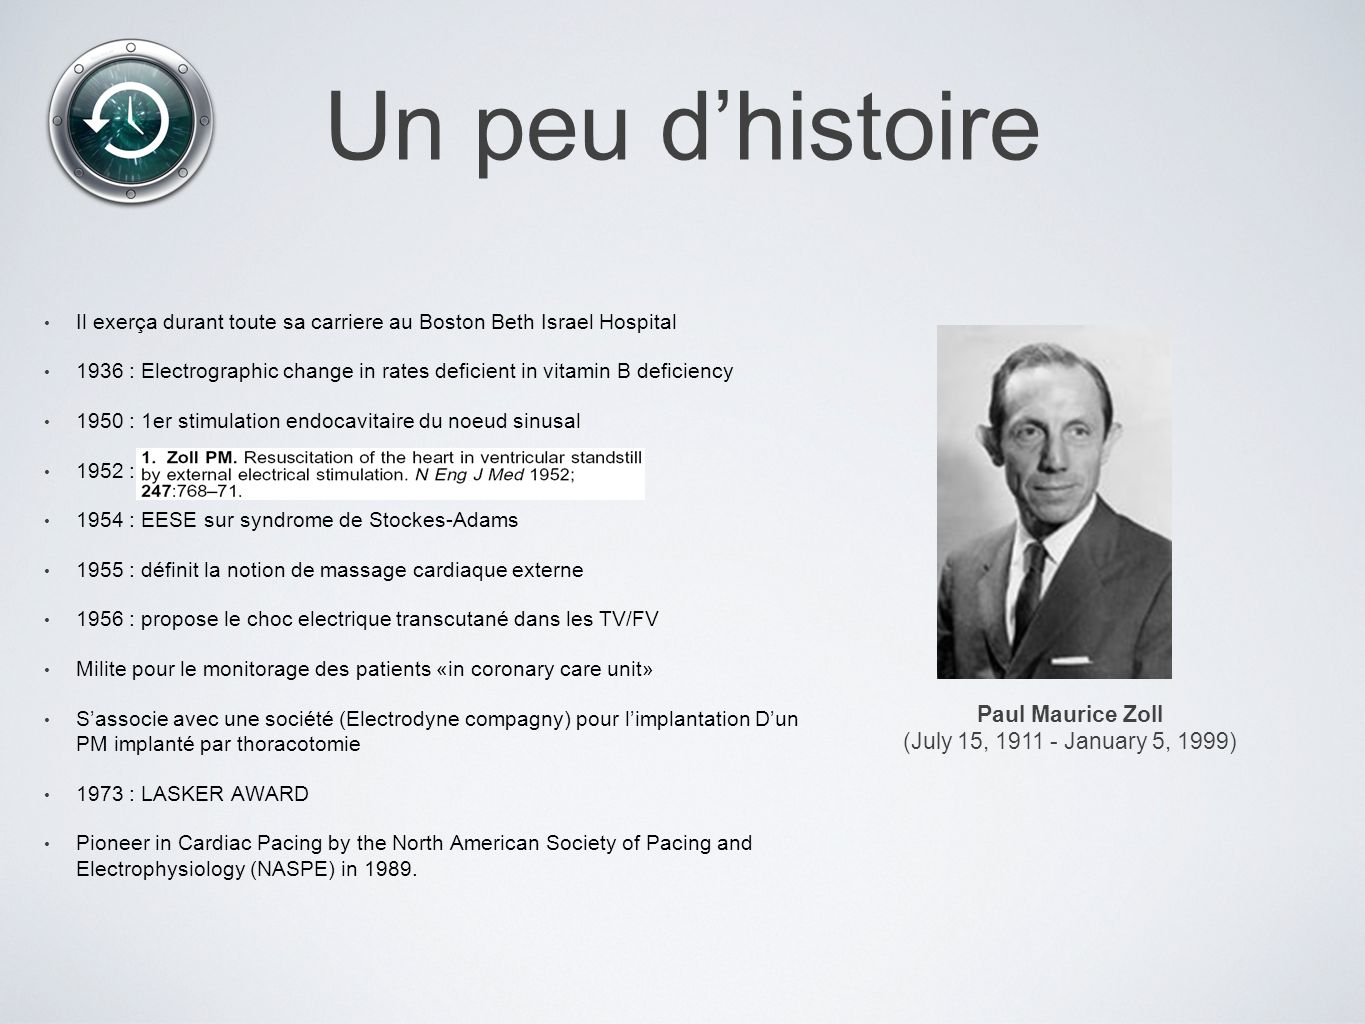 Un peu d'histoire Paul Maurice Zoll (July 15, 1911 - January 5, 1999)